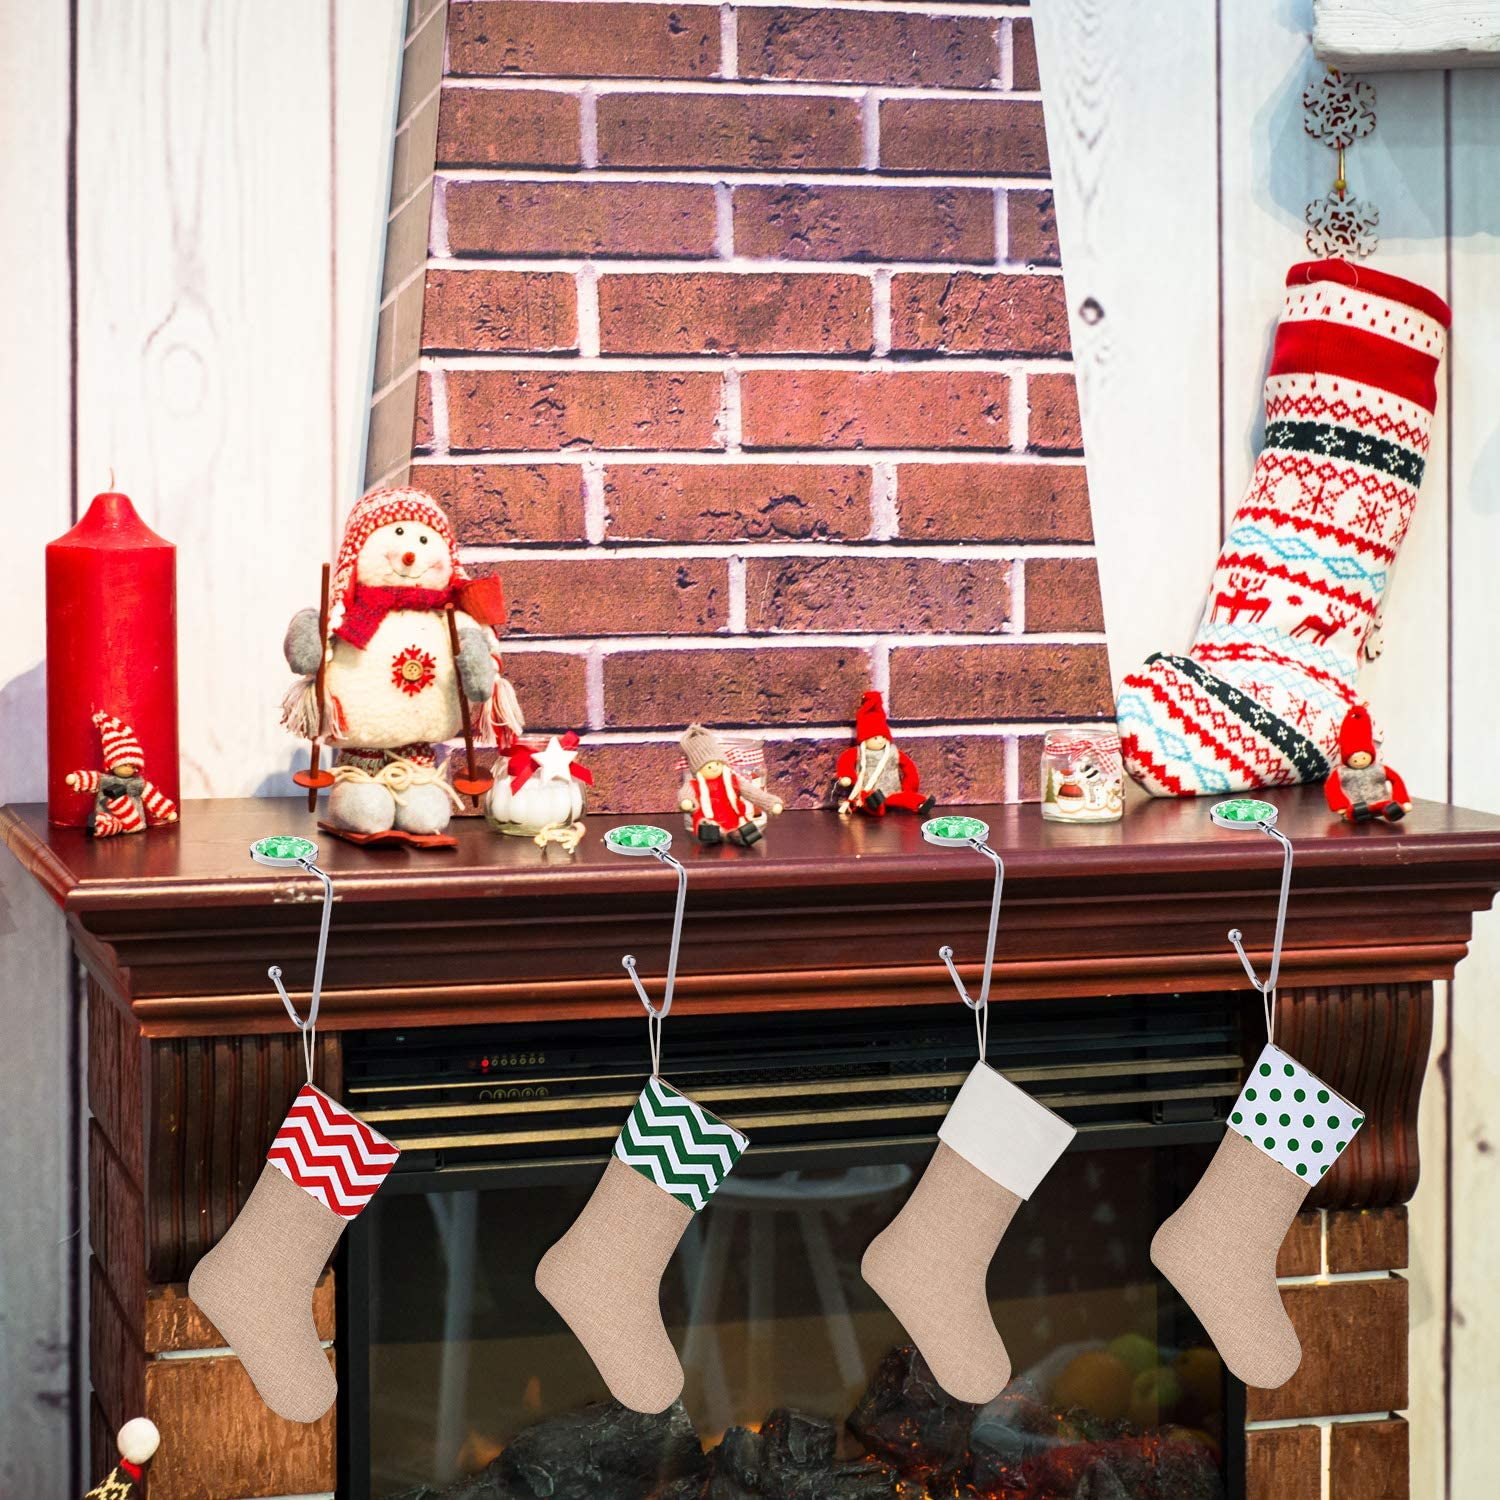 Sunshane 4 Pieces Christmas Stocking Holders Mantel Hooks Hanger Safety Hang Grip Stockings Clip for Christmas Party Decorations Red